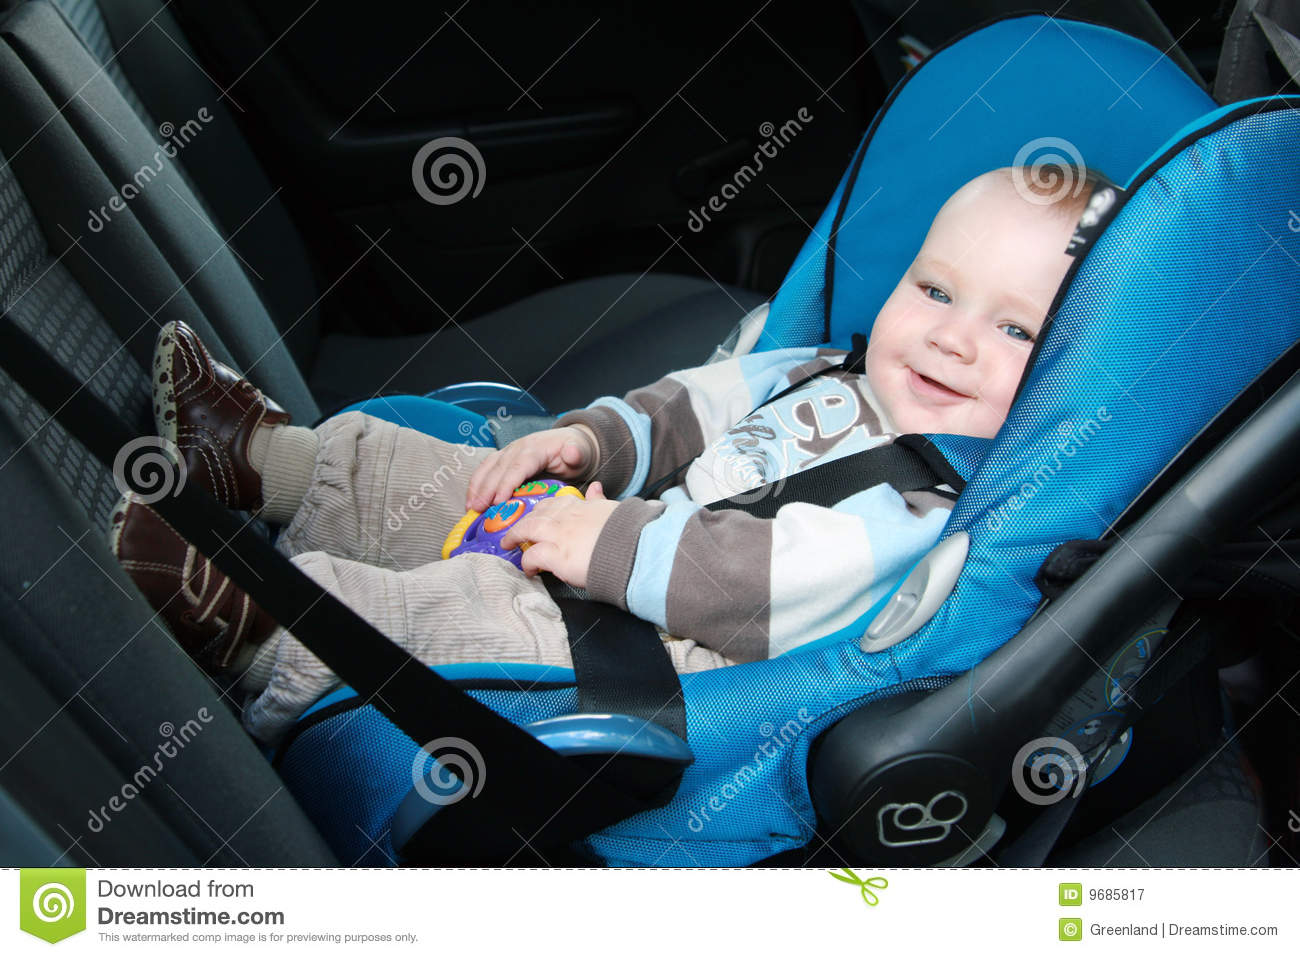 Where can i get a free infant car seat